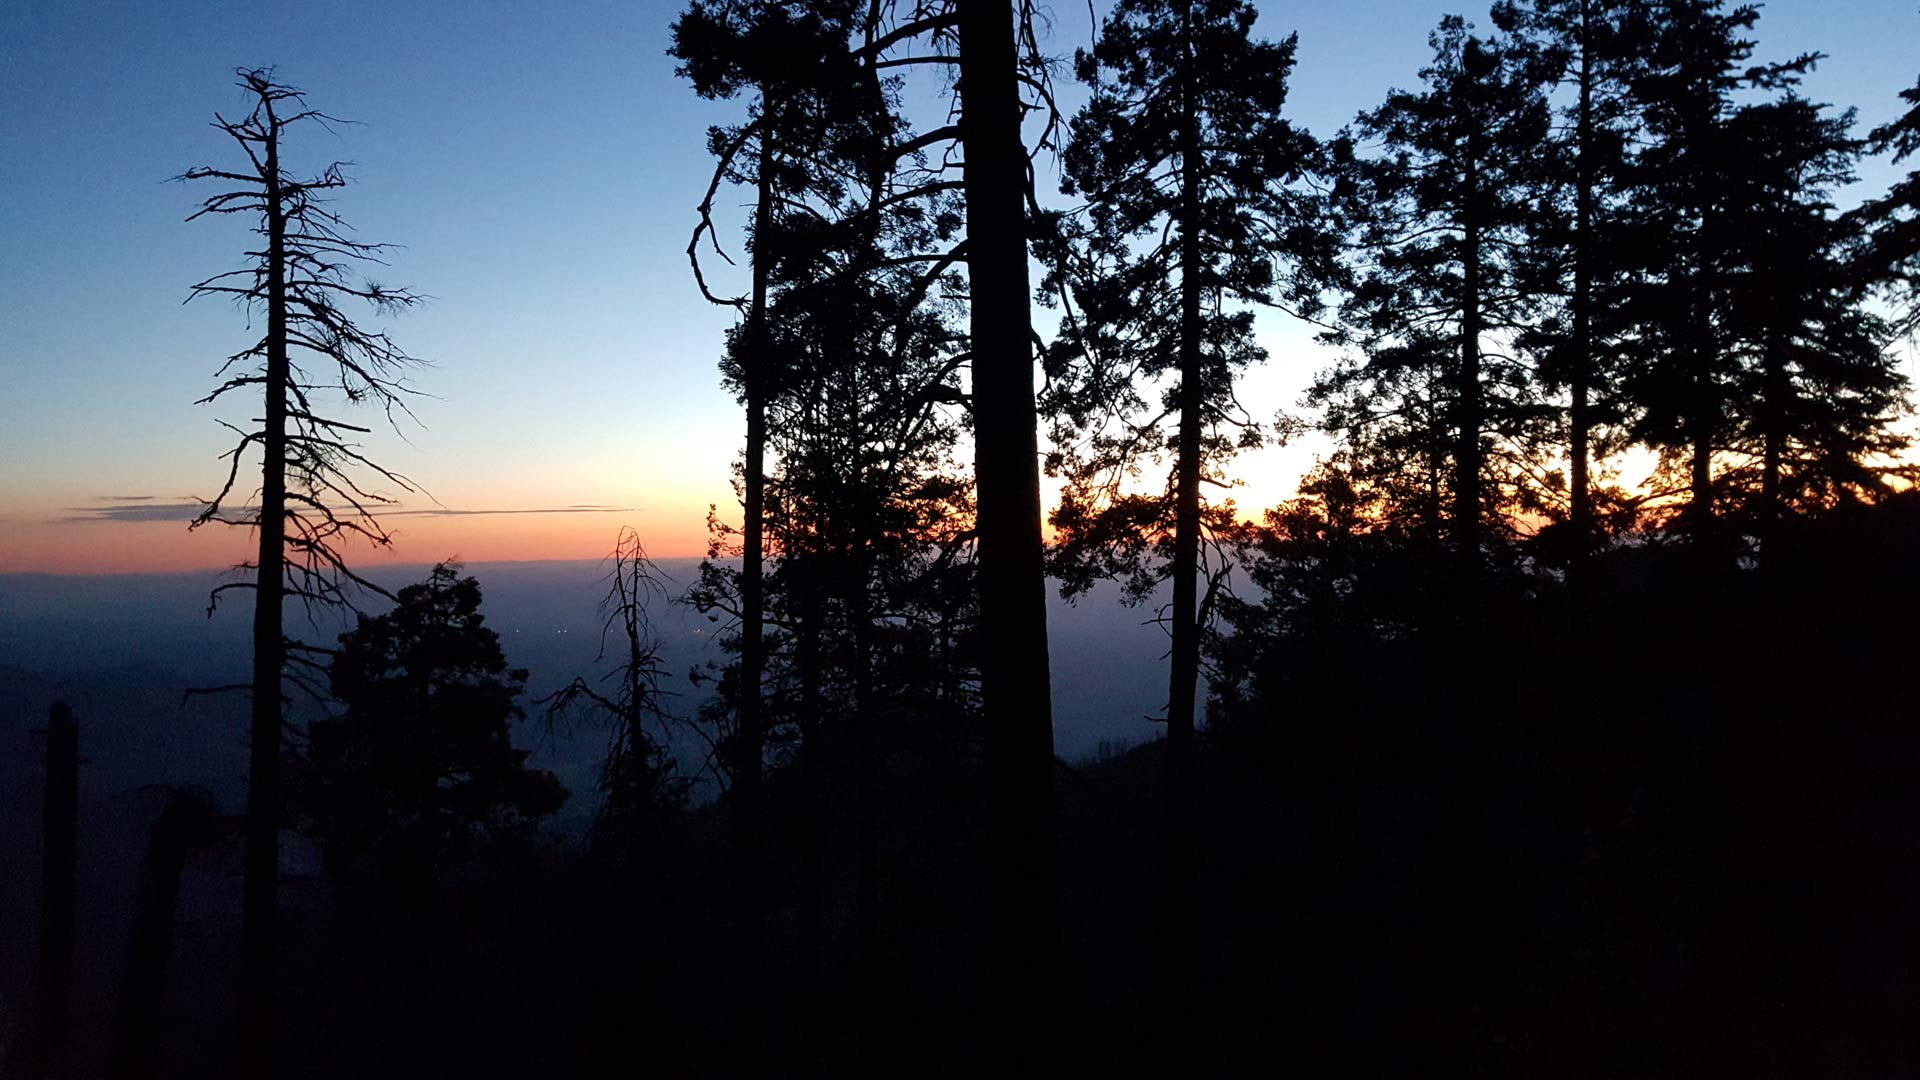 Sunrise over Mt. Lemmon in the Coronado National Forest.